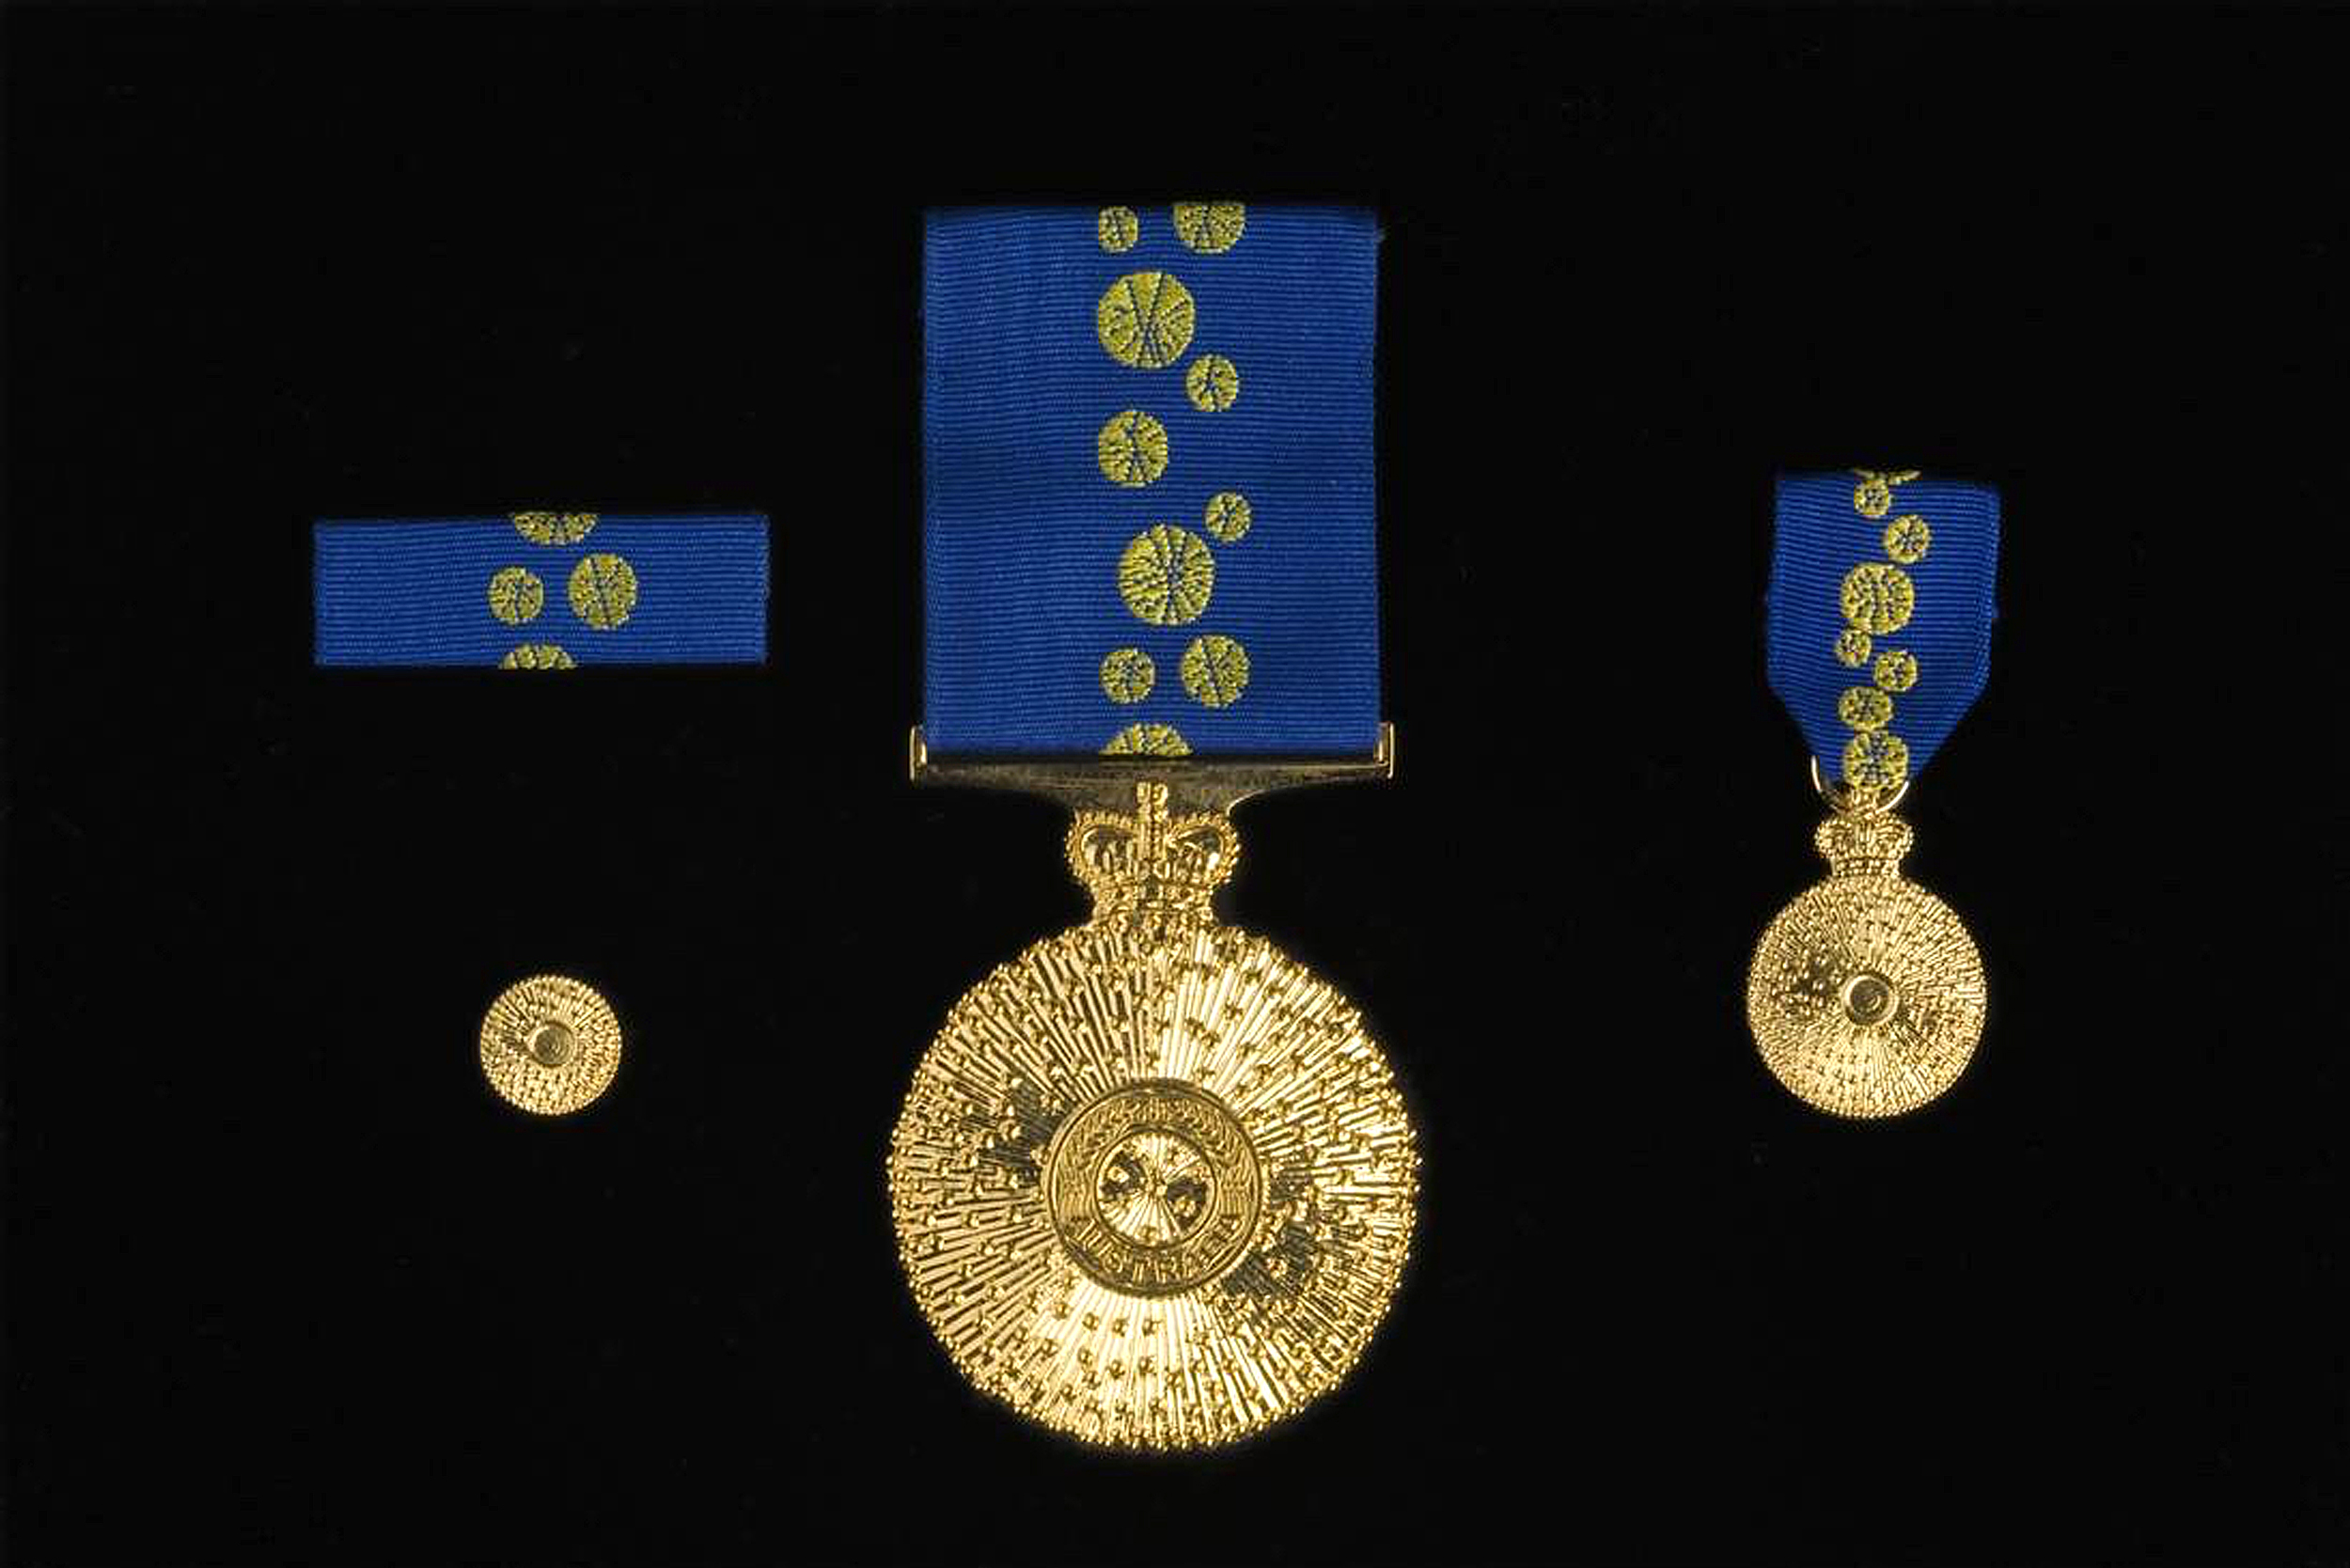 The Order of Australia is the highest honour an Australian civilian can receive. The insignia and ribbon are designed around a wattle blossom. Image courtesy of the National Museum of Australia.